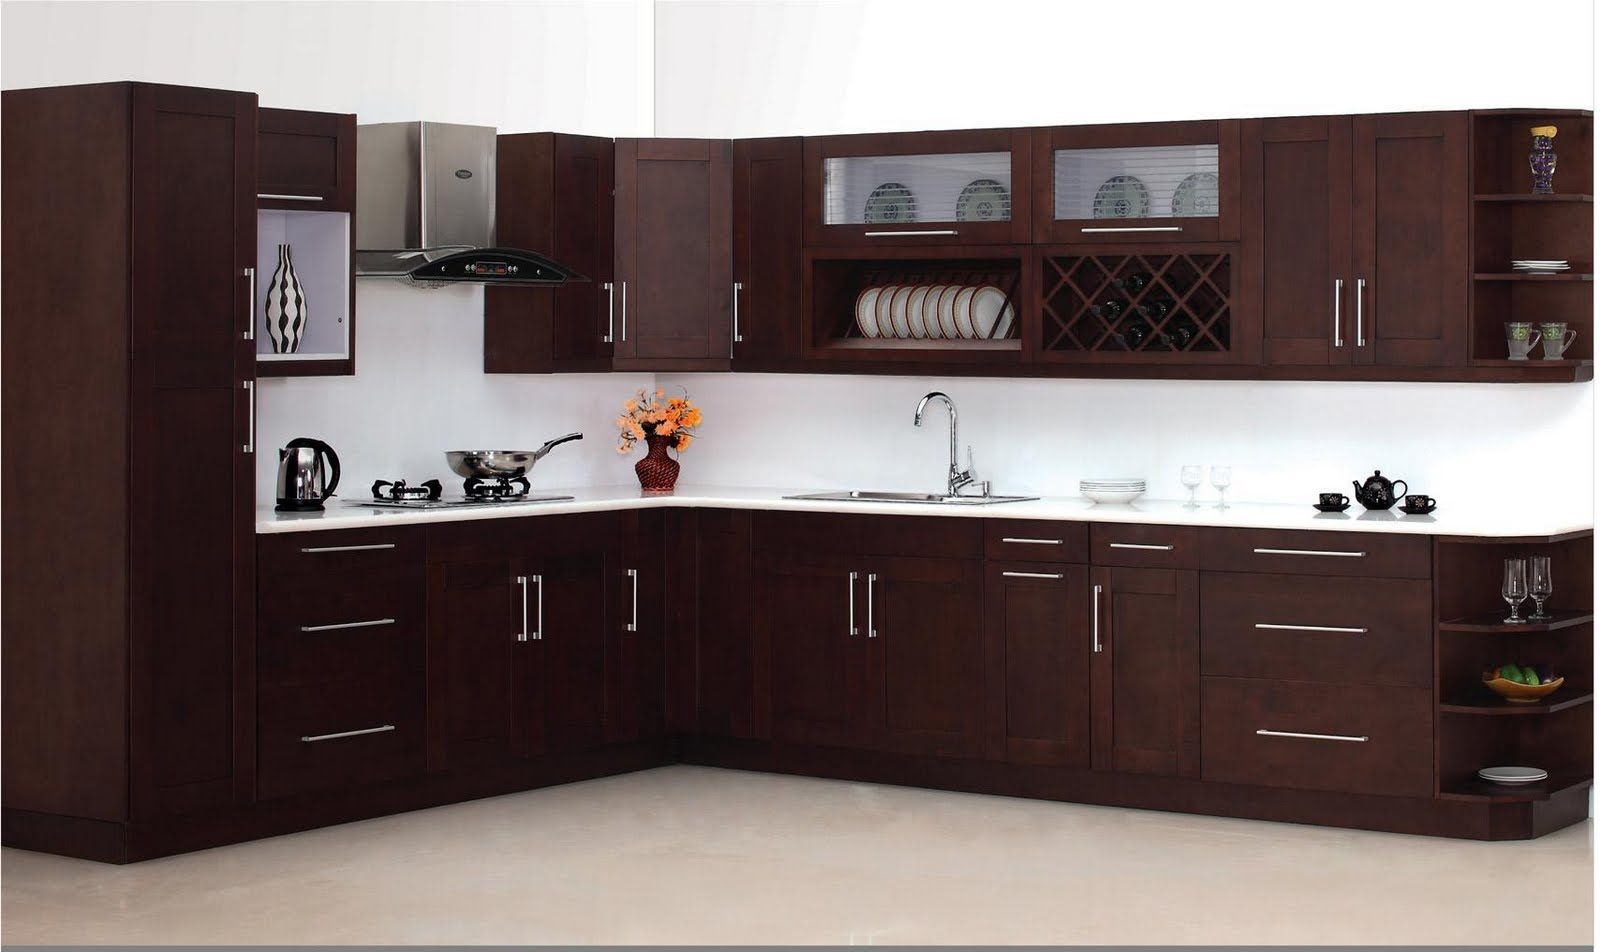 Coffee Color Kitchen Cabinets The Cabinet Spot Espresso Shaker Maple Cabinets